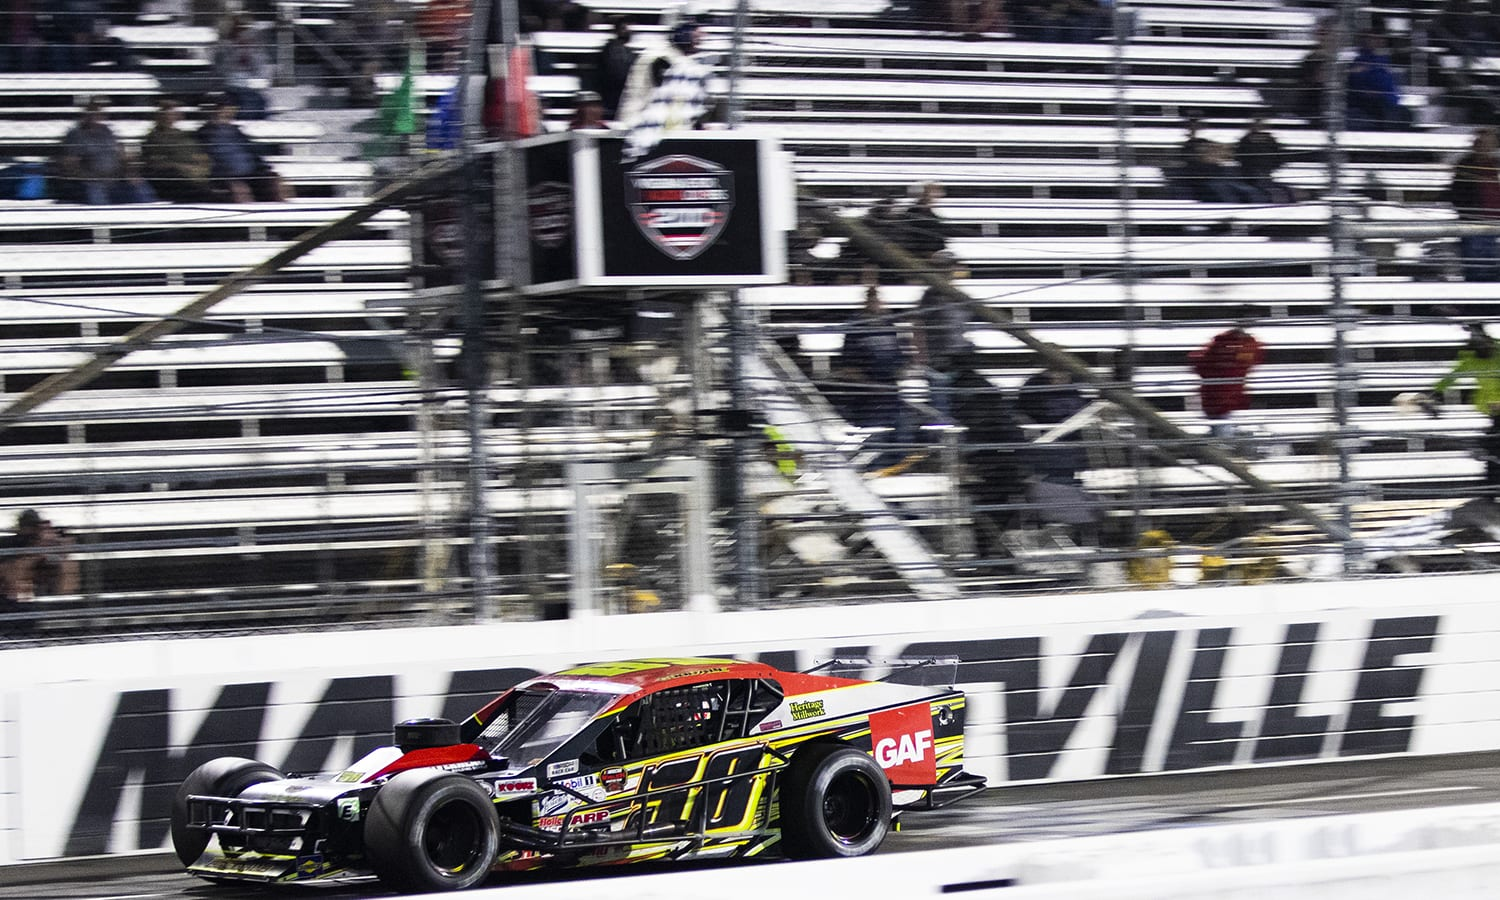 Eric Goodale, driver of the #58 GAF Roofing Chevrolet, wins the Virginia Is For Racing Lovers 200 for the Whelen Modified Tour at Martinsville Raceway in Martinsville, Virginia on April 8, 2021. (Adam Glanzman/NASCAR)